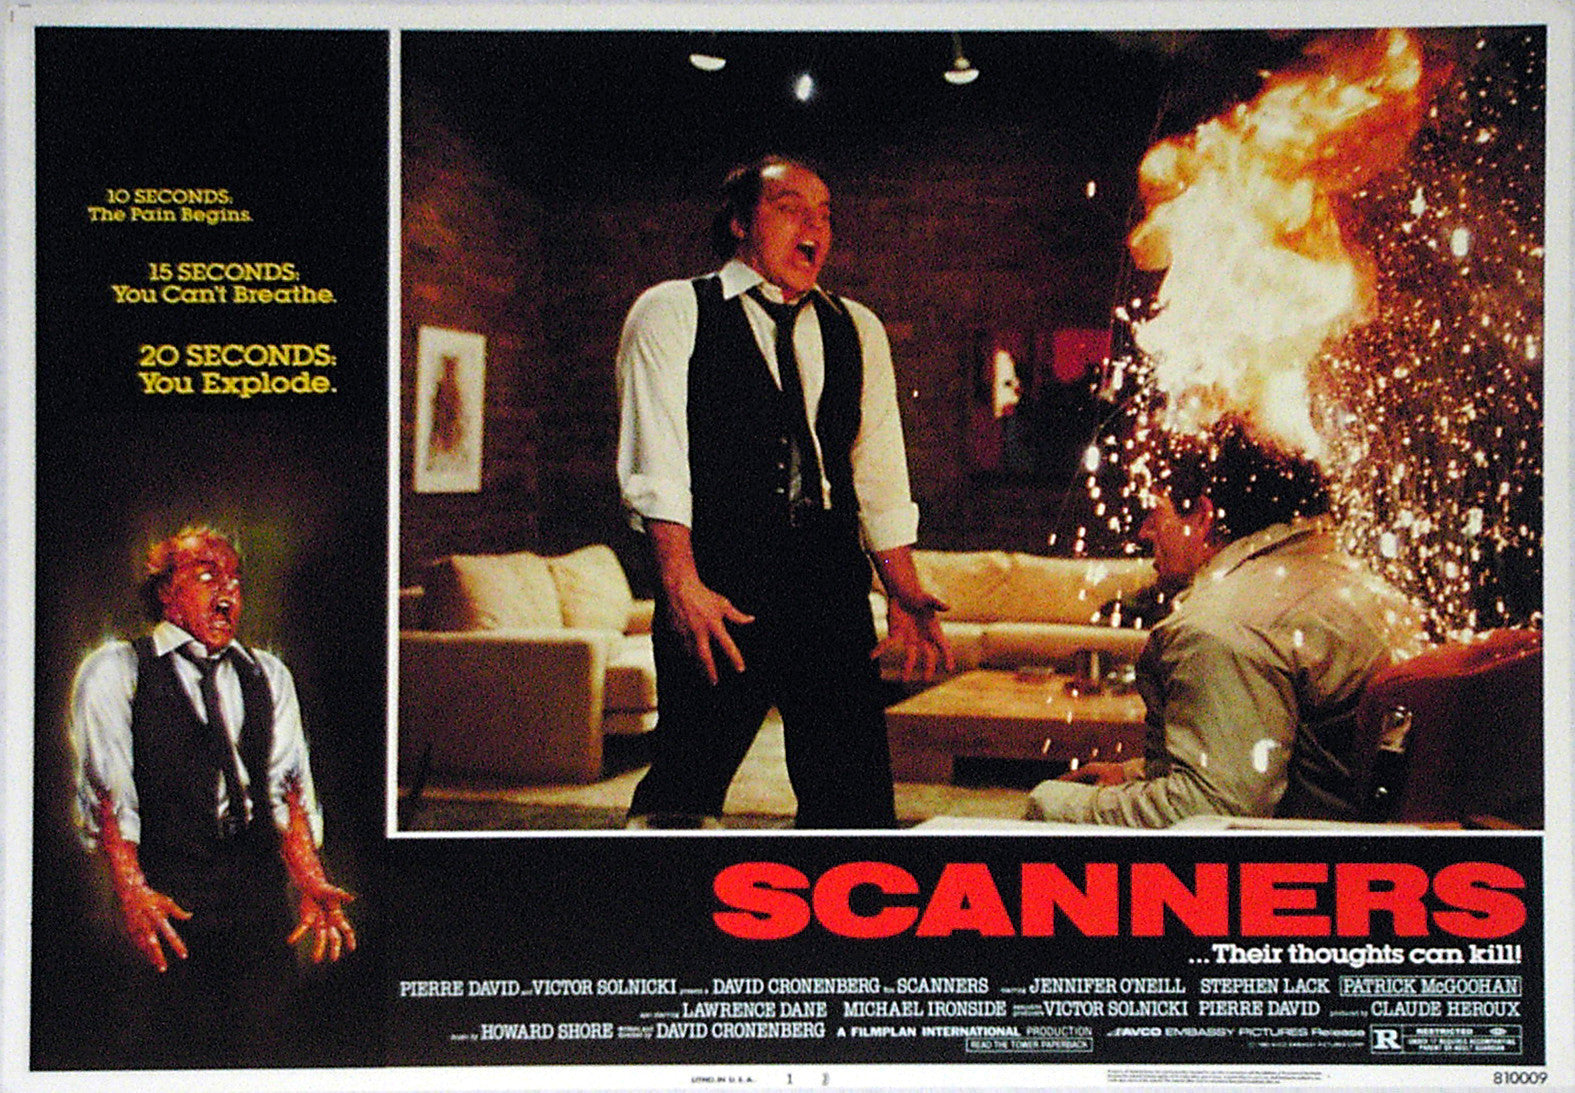 SCANNERS - US lobby card v1